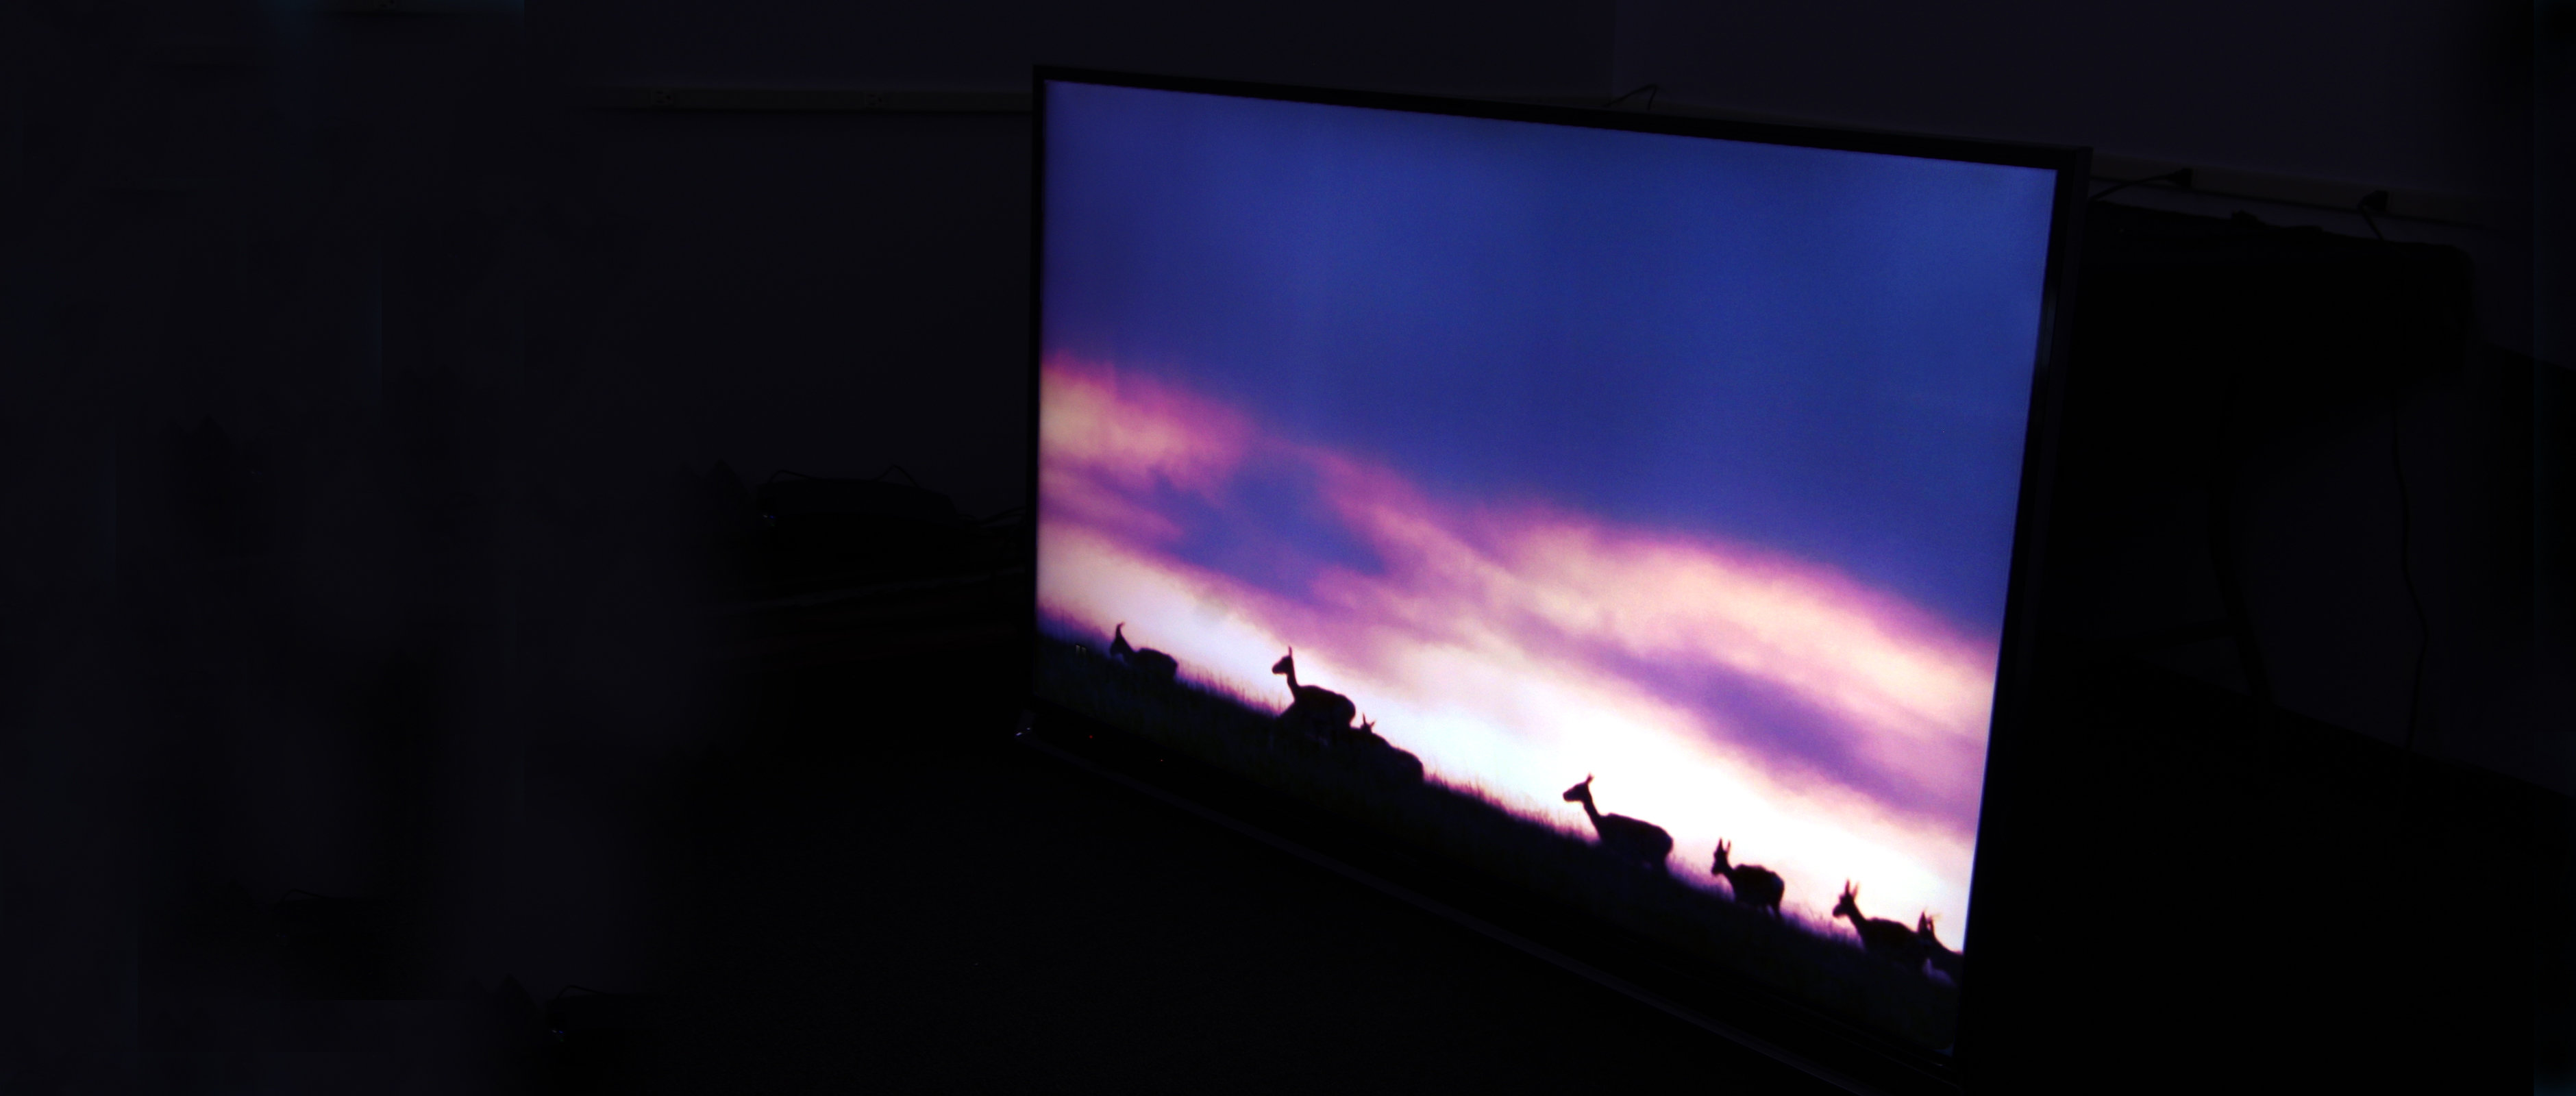 The Panasonic TC-65AX800U 4K LED LCD TV